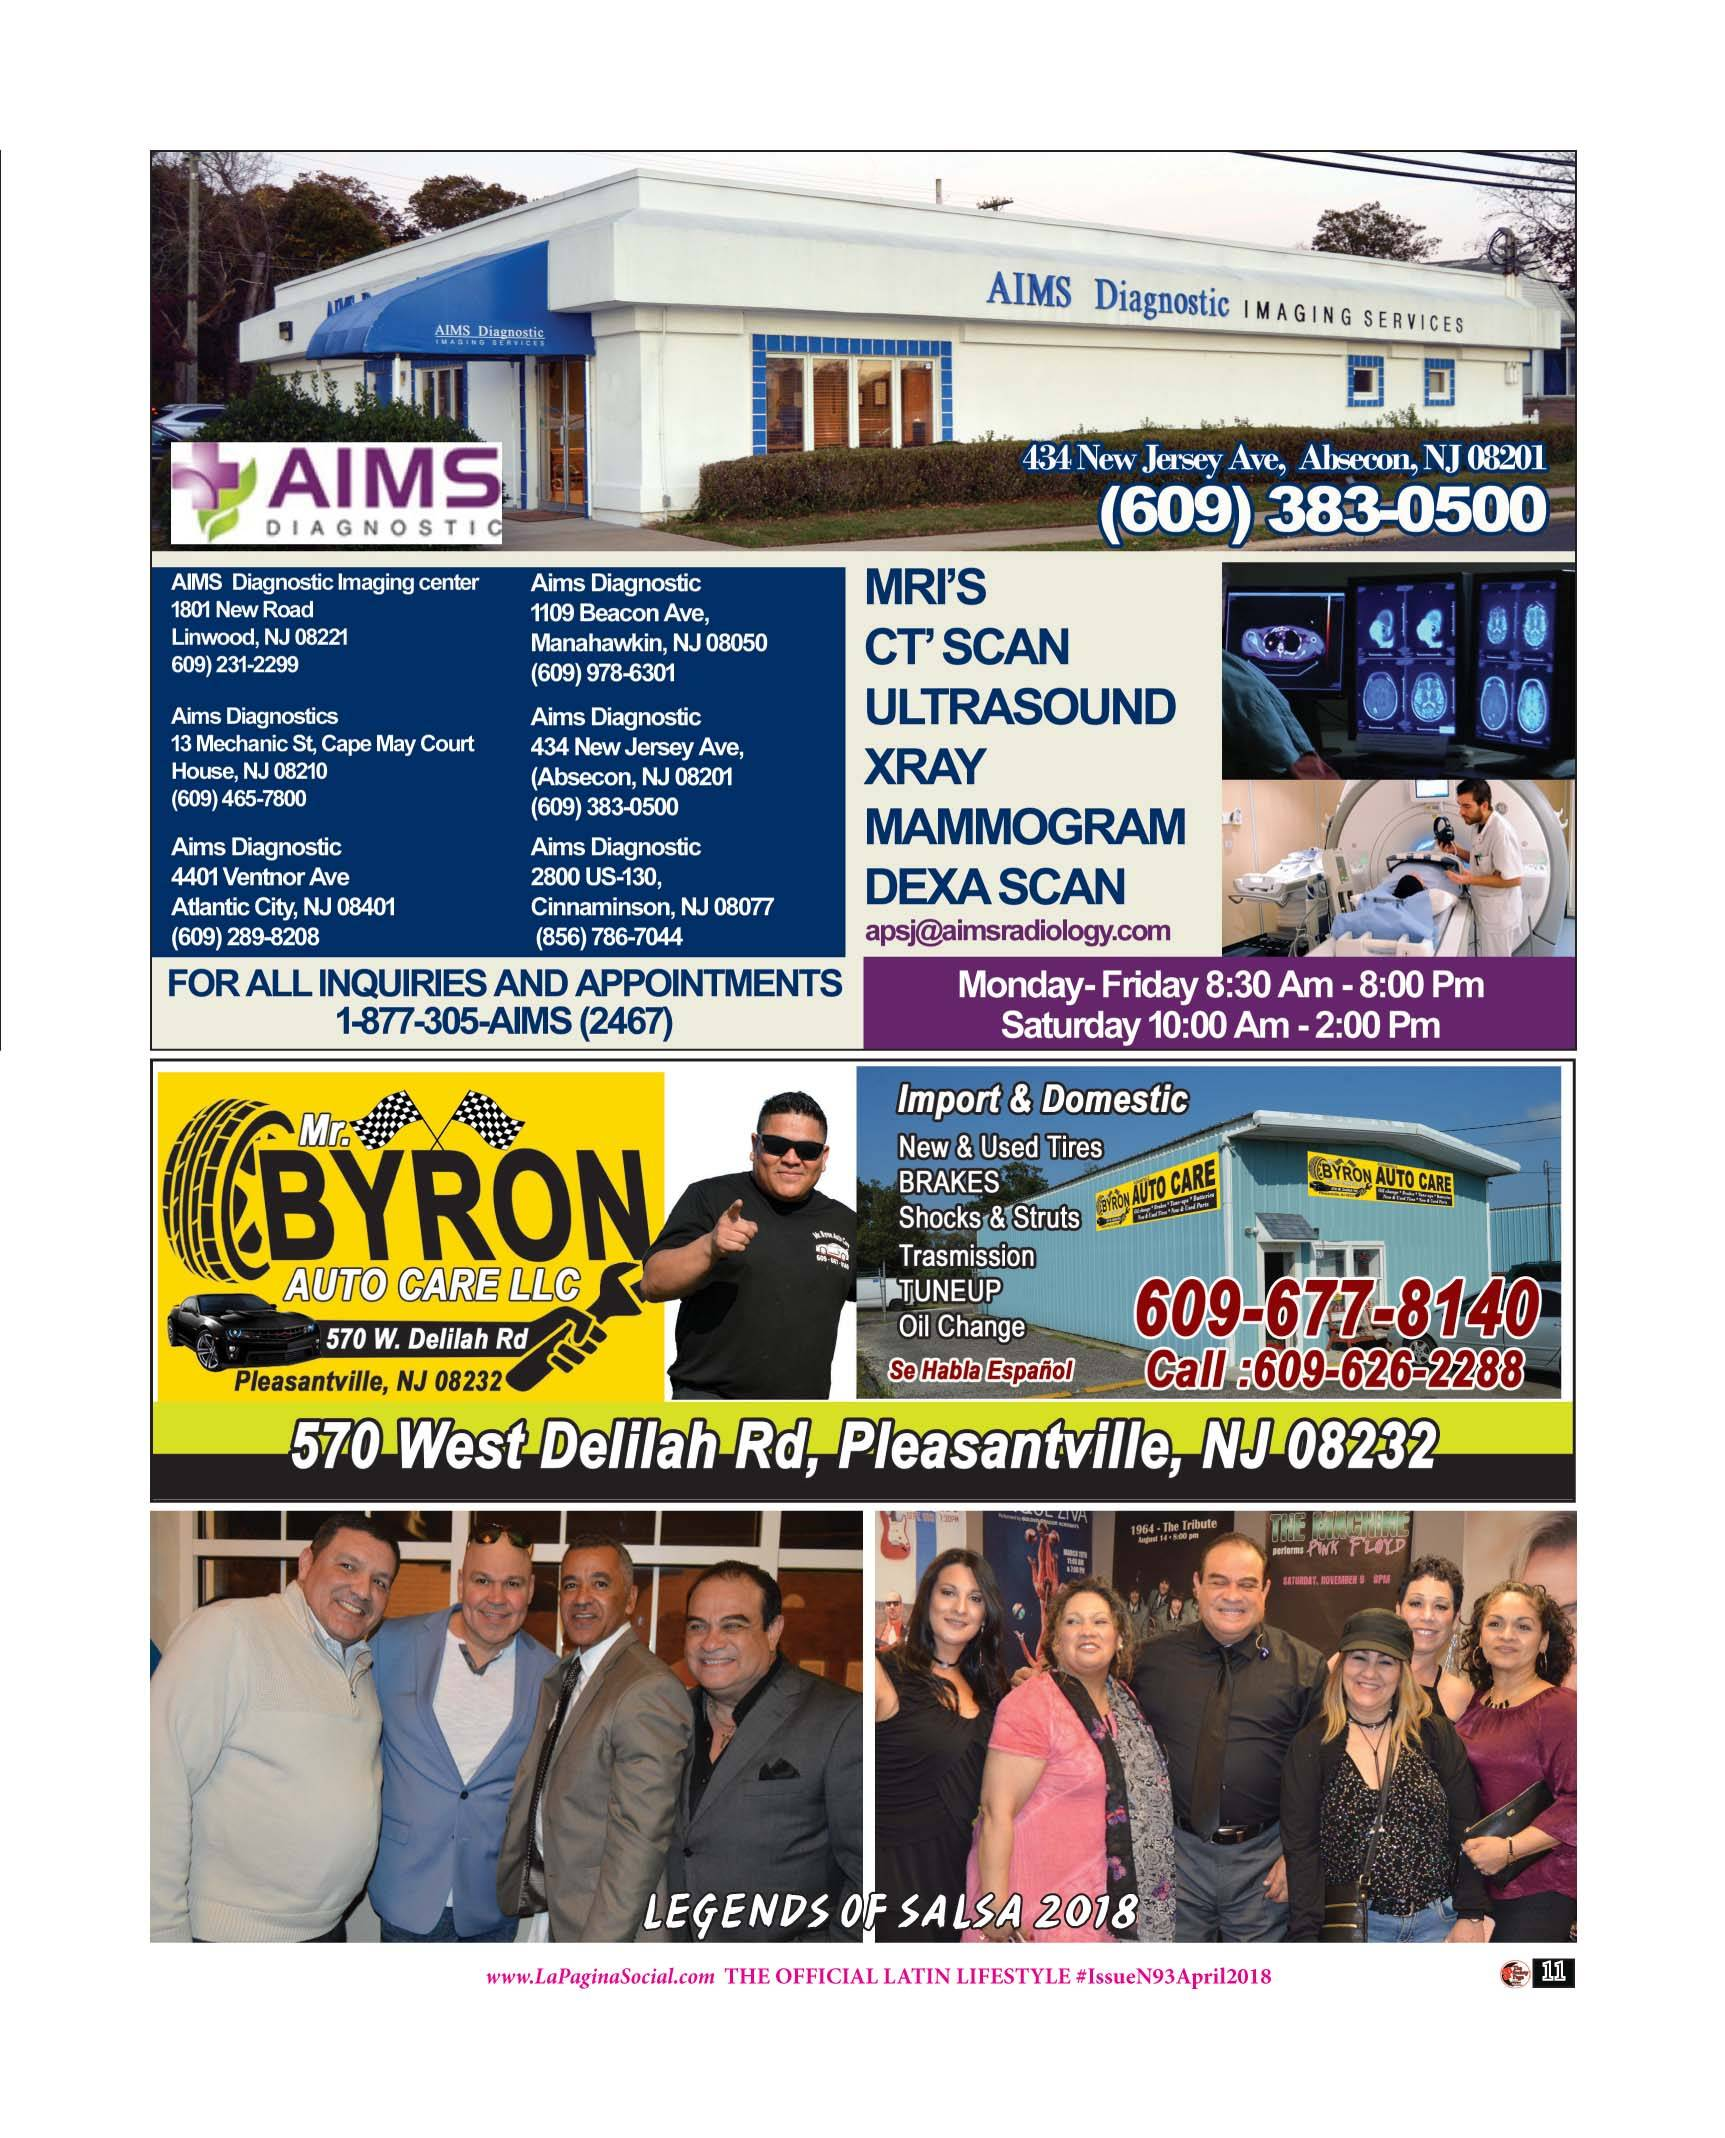 Aims Diagnostic , Mr Byron Auto Care